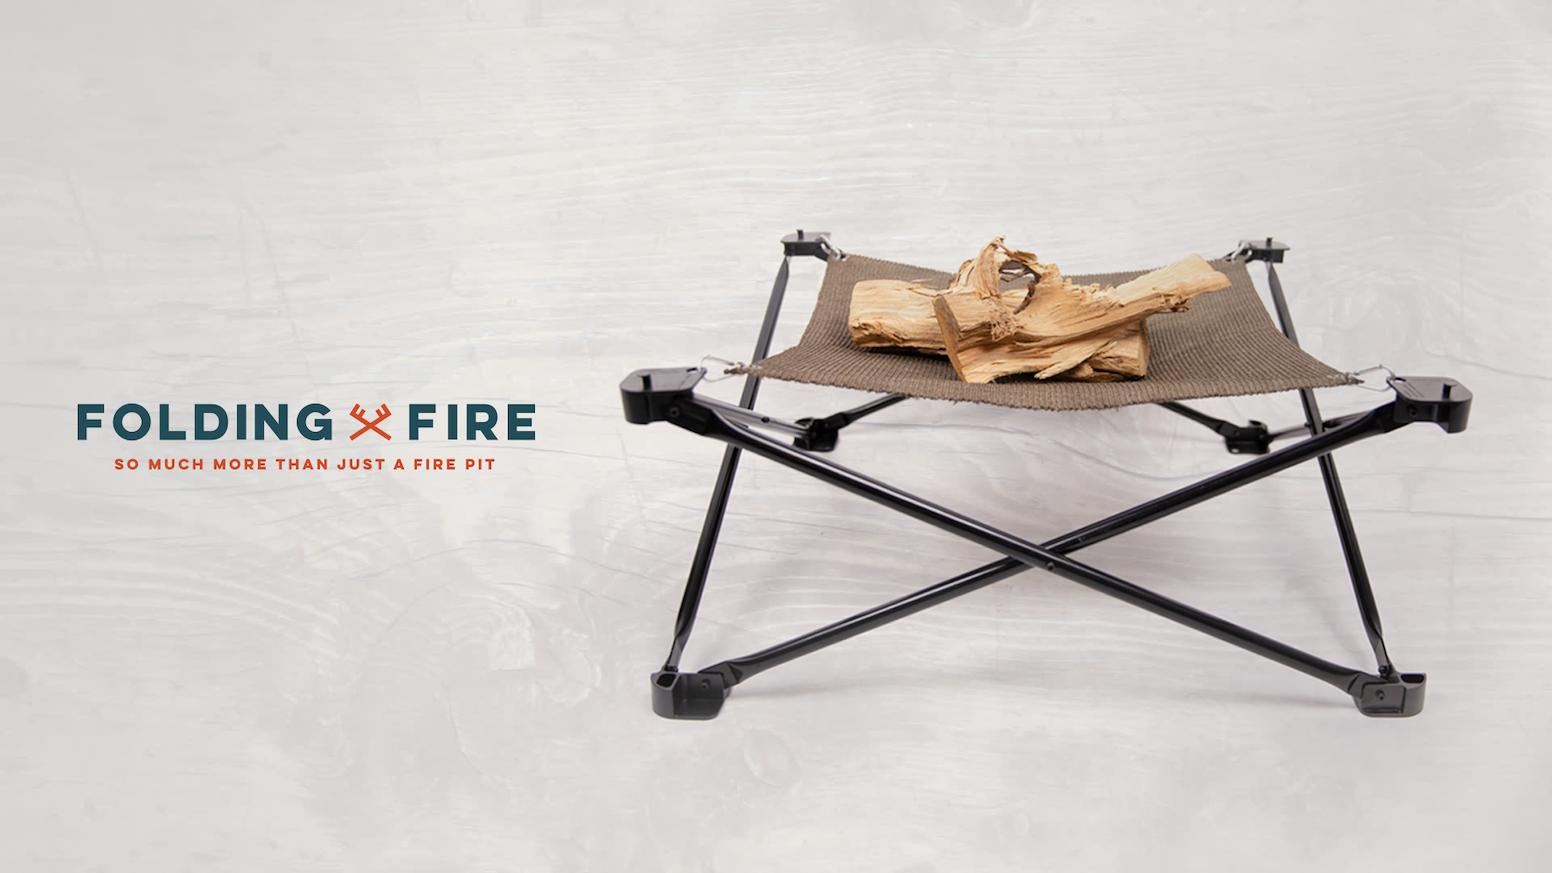 Folding Fire is a lightweight and foldable fire pit. She's the perfect companion for all your adventures!